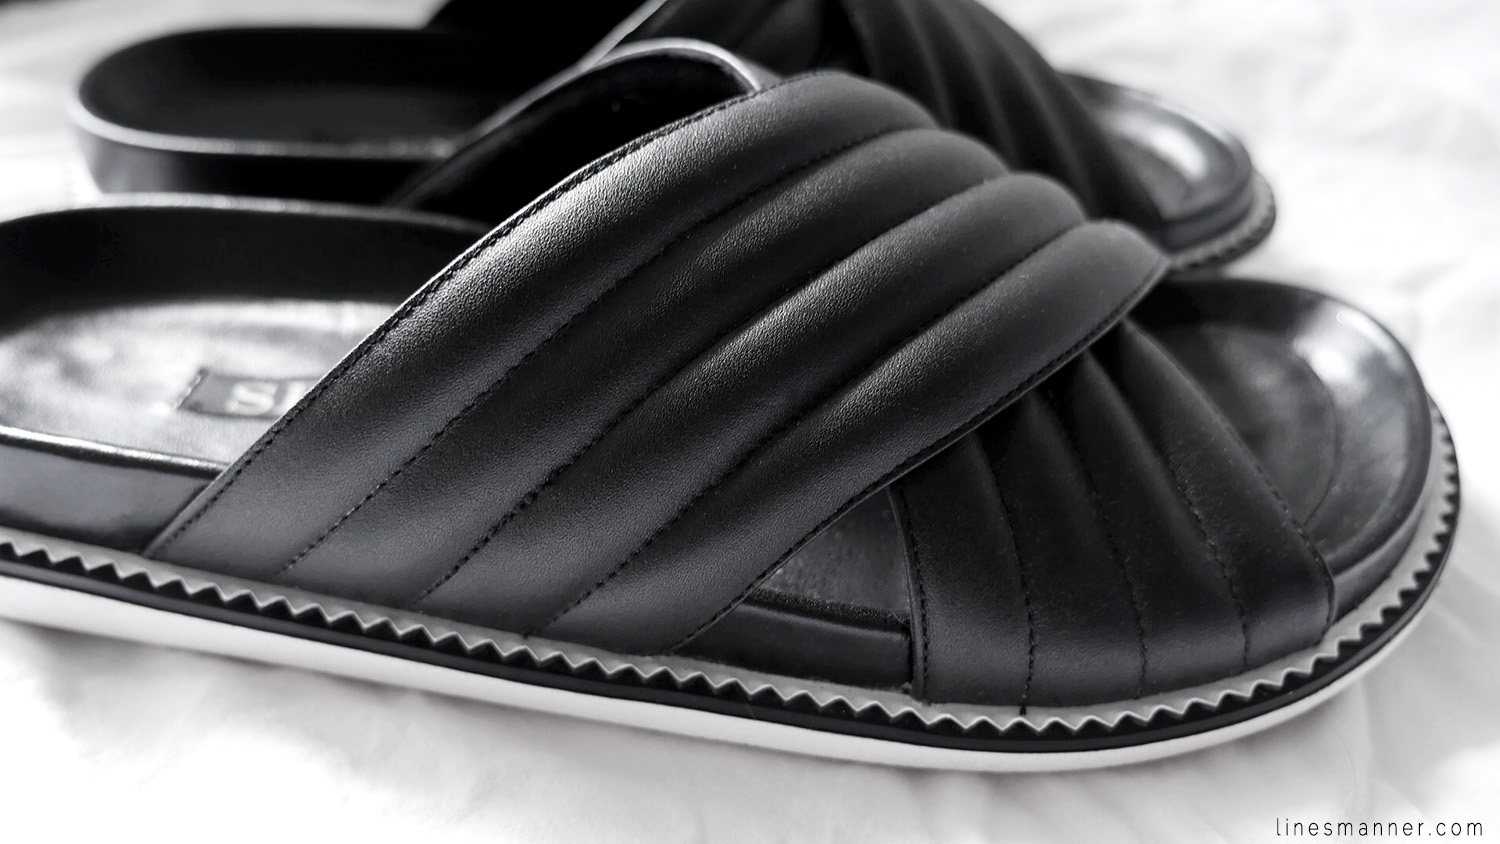 Lines-Manner-Trend-Shoes-Sandal-Comfort-Modern-Simplicity-Quality-Trend-Minimalism-Minimal-Leather-Flat-Senso-Summer-Black-Monochrome-3